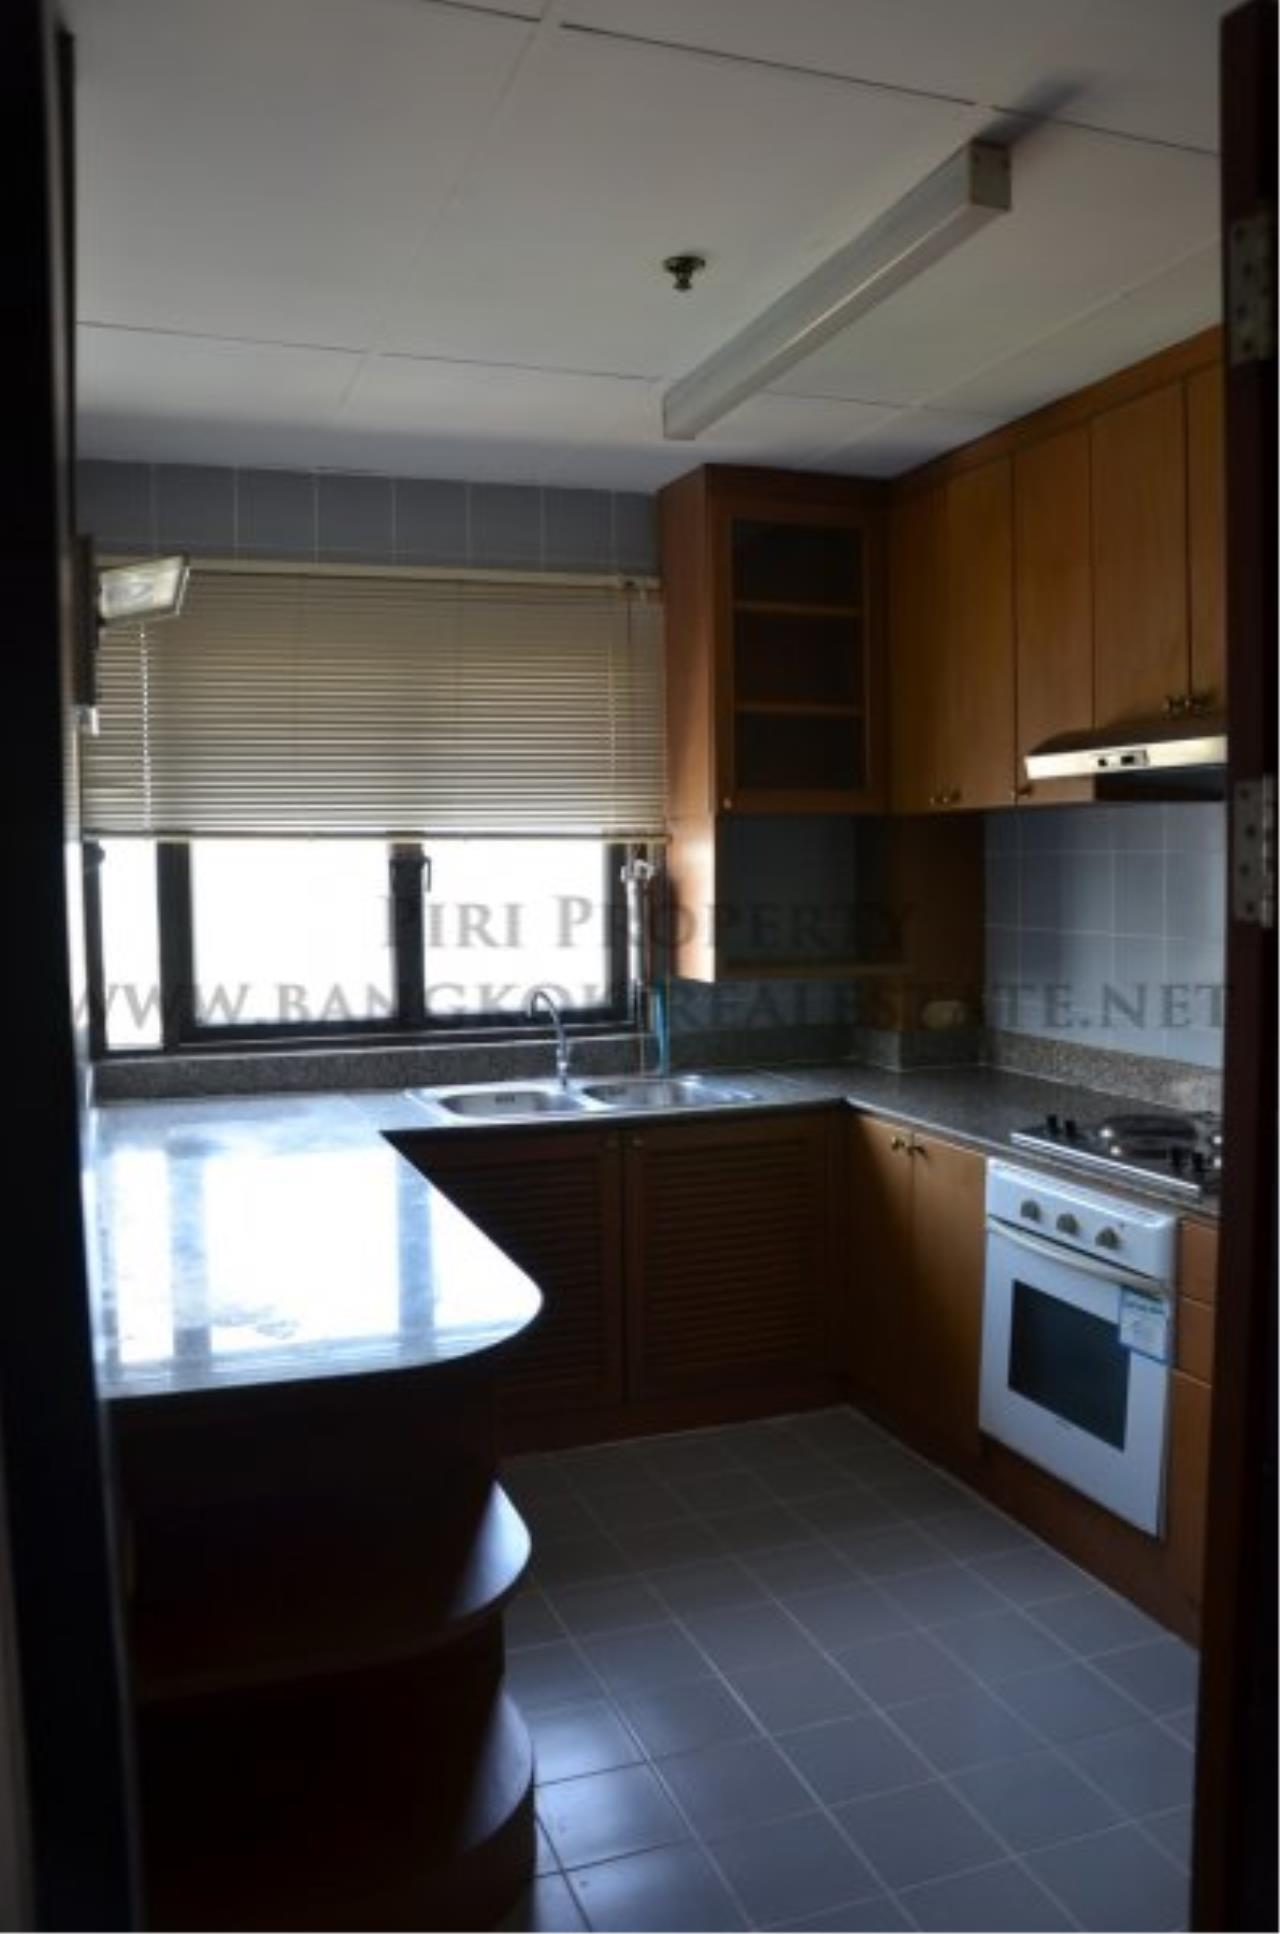 Piri Property Agency's Spacious 3 Bedroom Condo in Ekkamai - 128 SQM for 50K - Top View Tower - 30th Floor 11